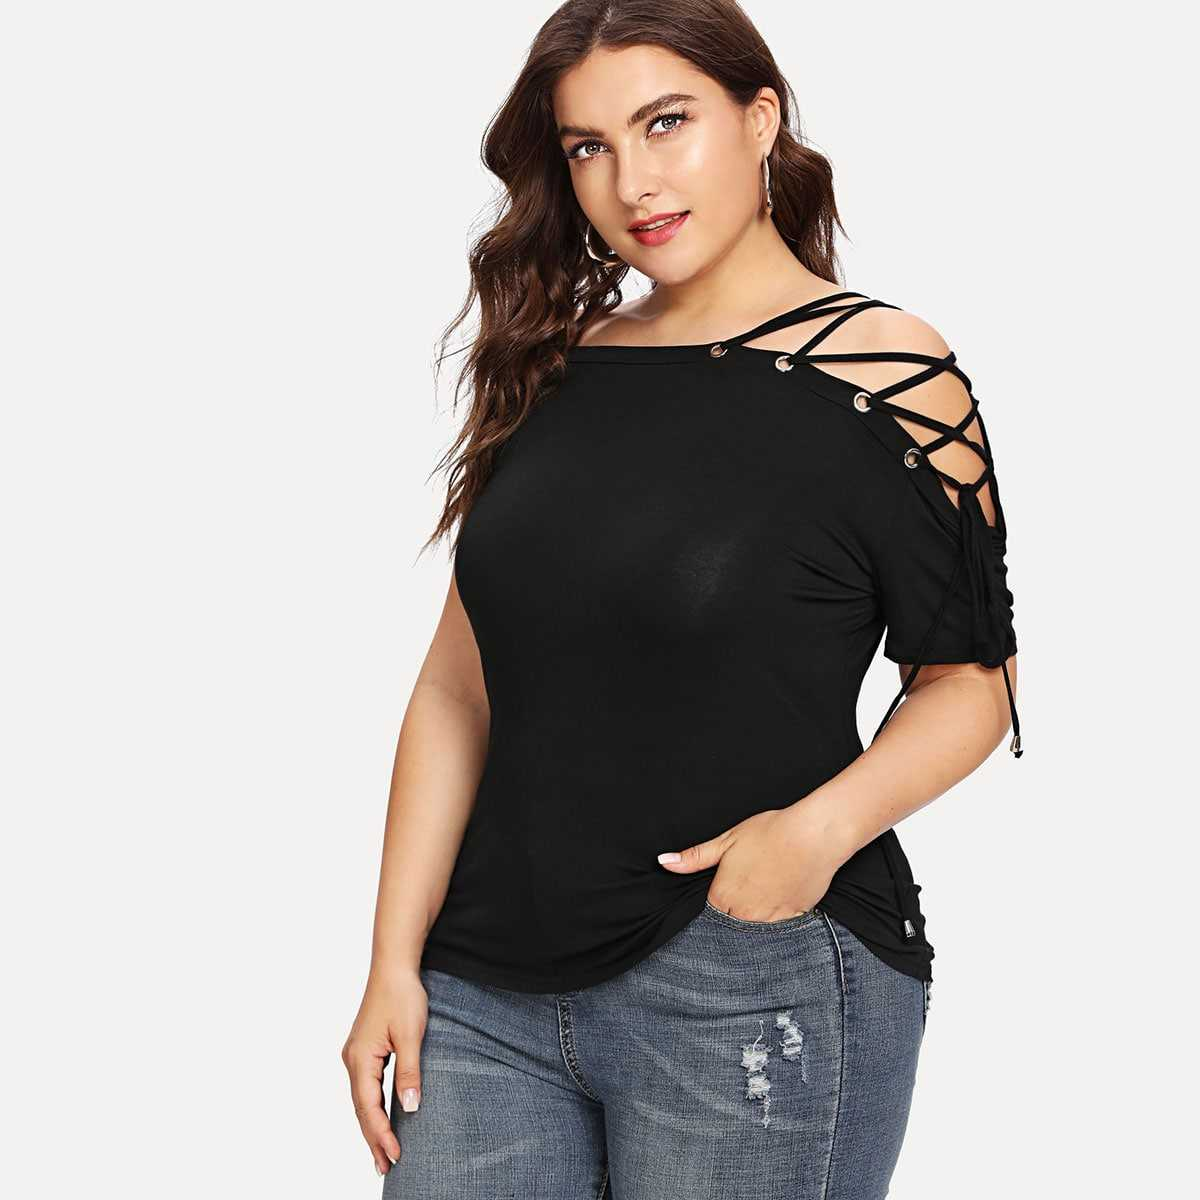 Plus Lace-Up Solid Tee in Black by ROMWE on GOOFASH